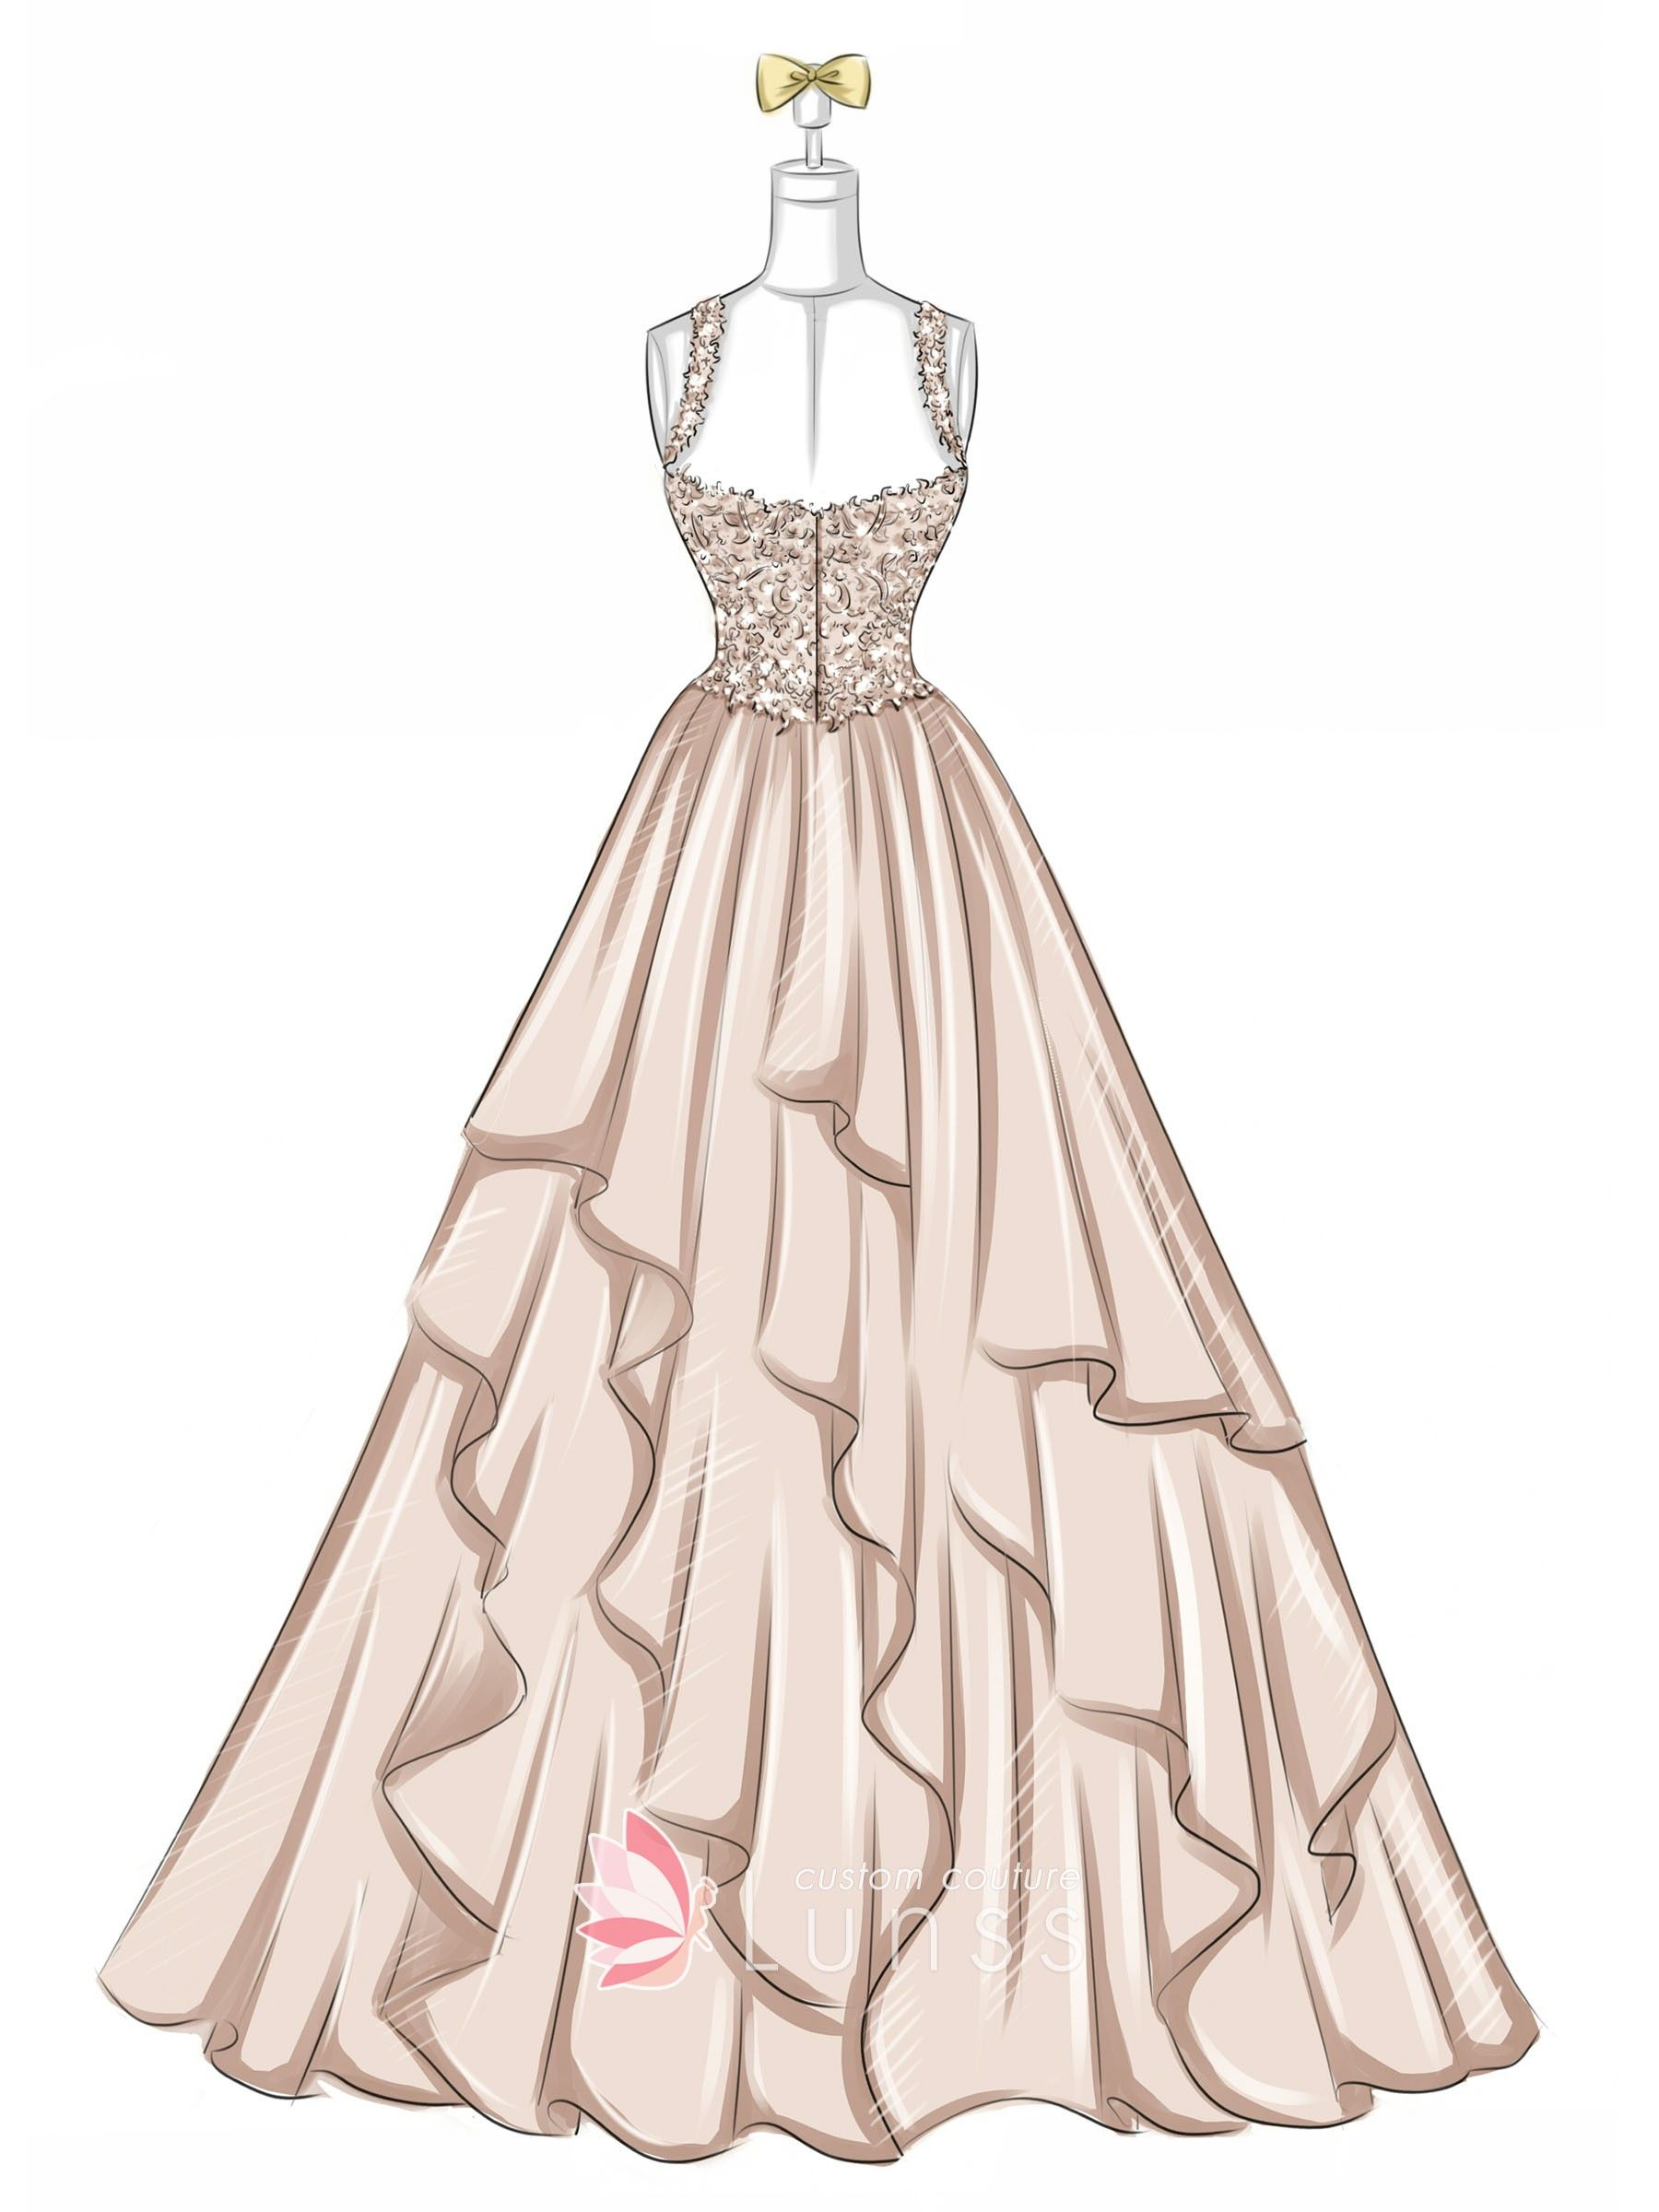 Dress Sketches Gallery - Wedding Dresses, Evening Prom Gowns